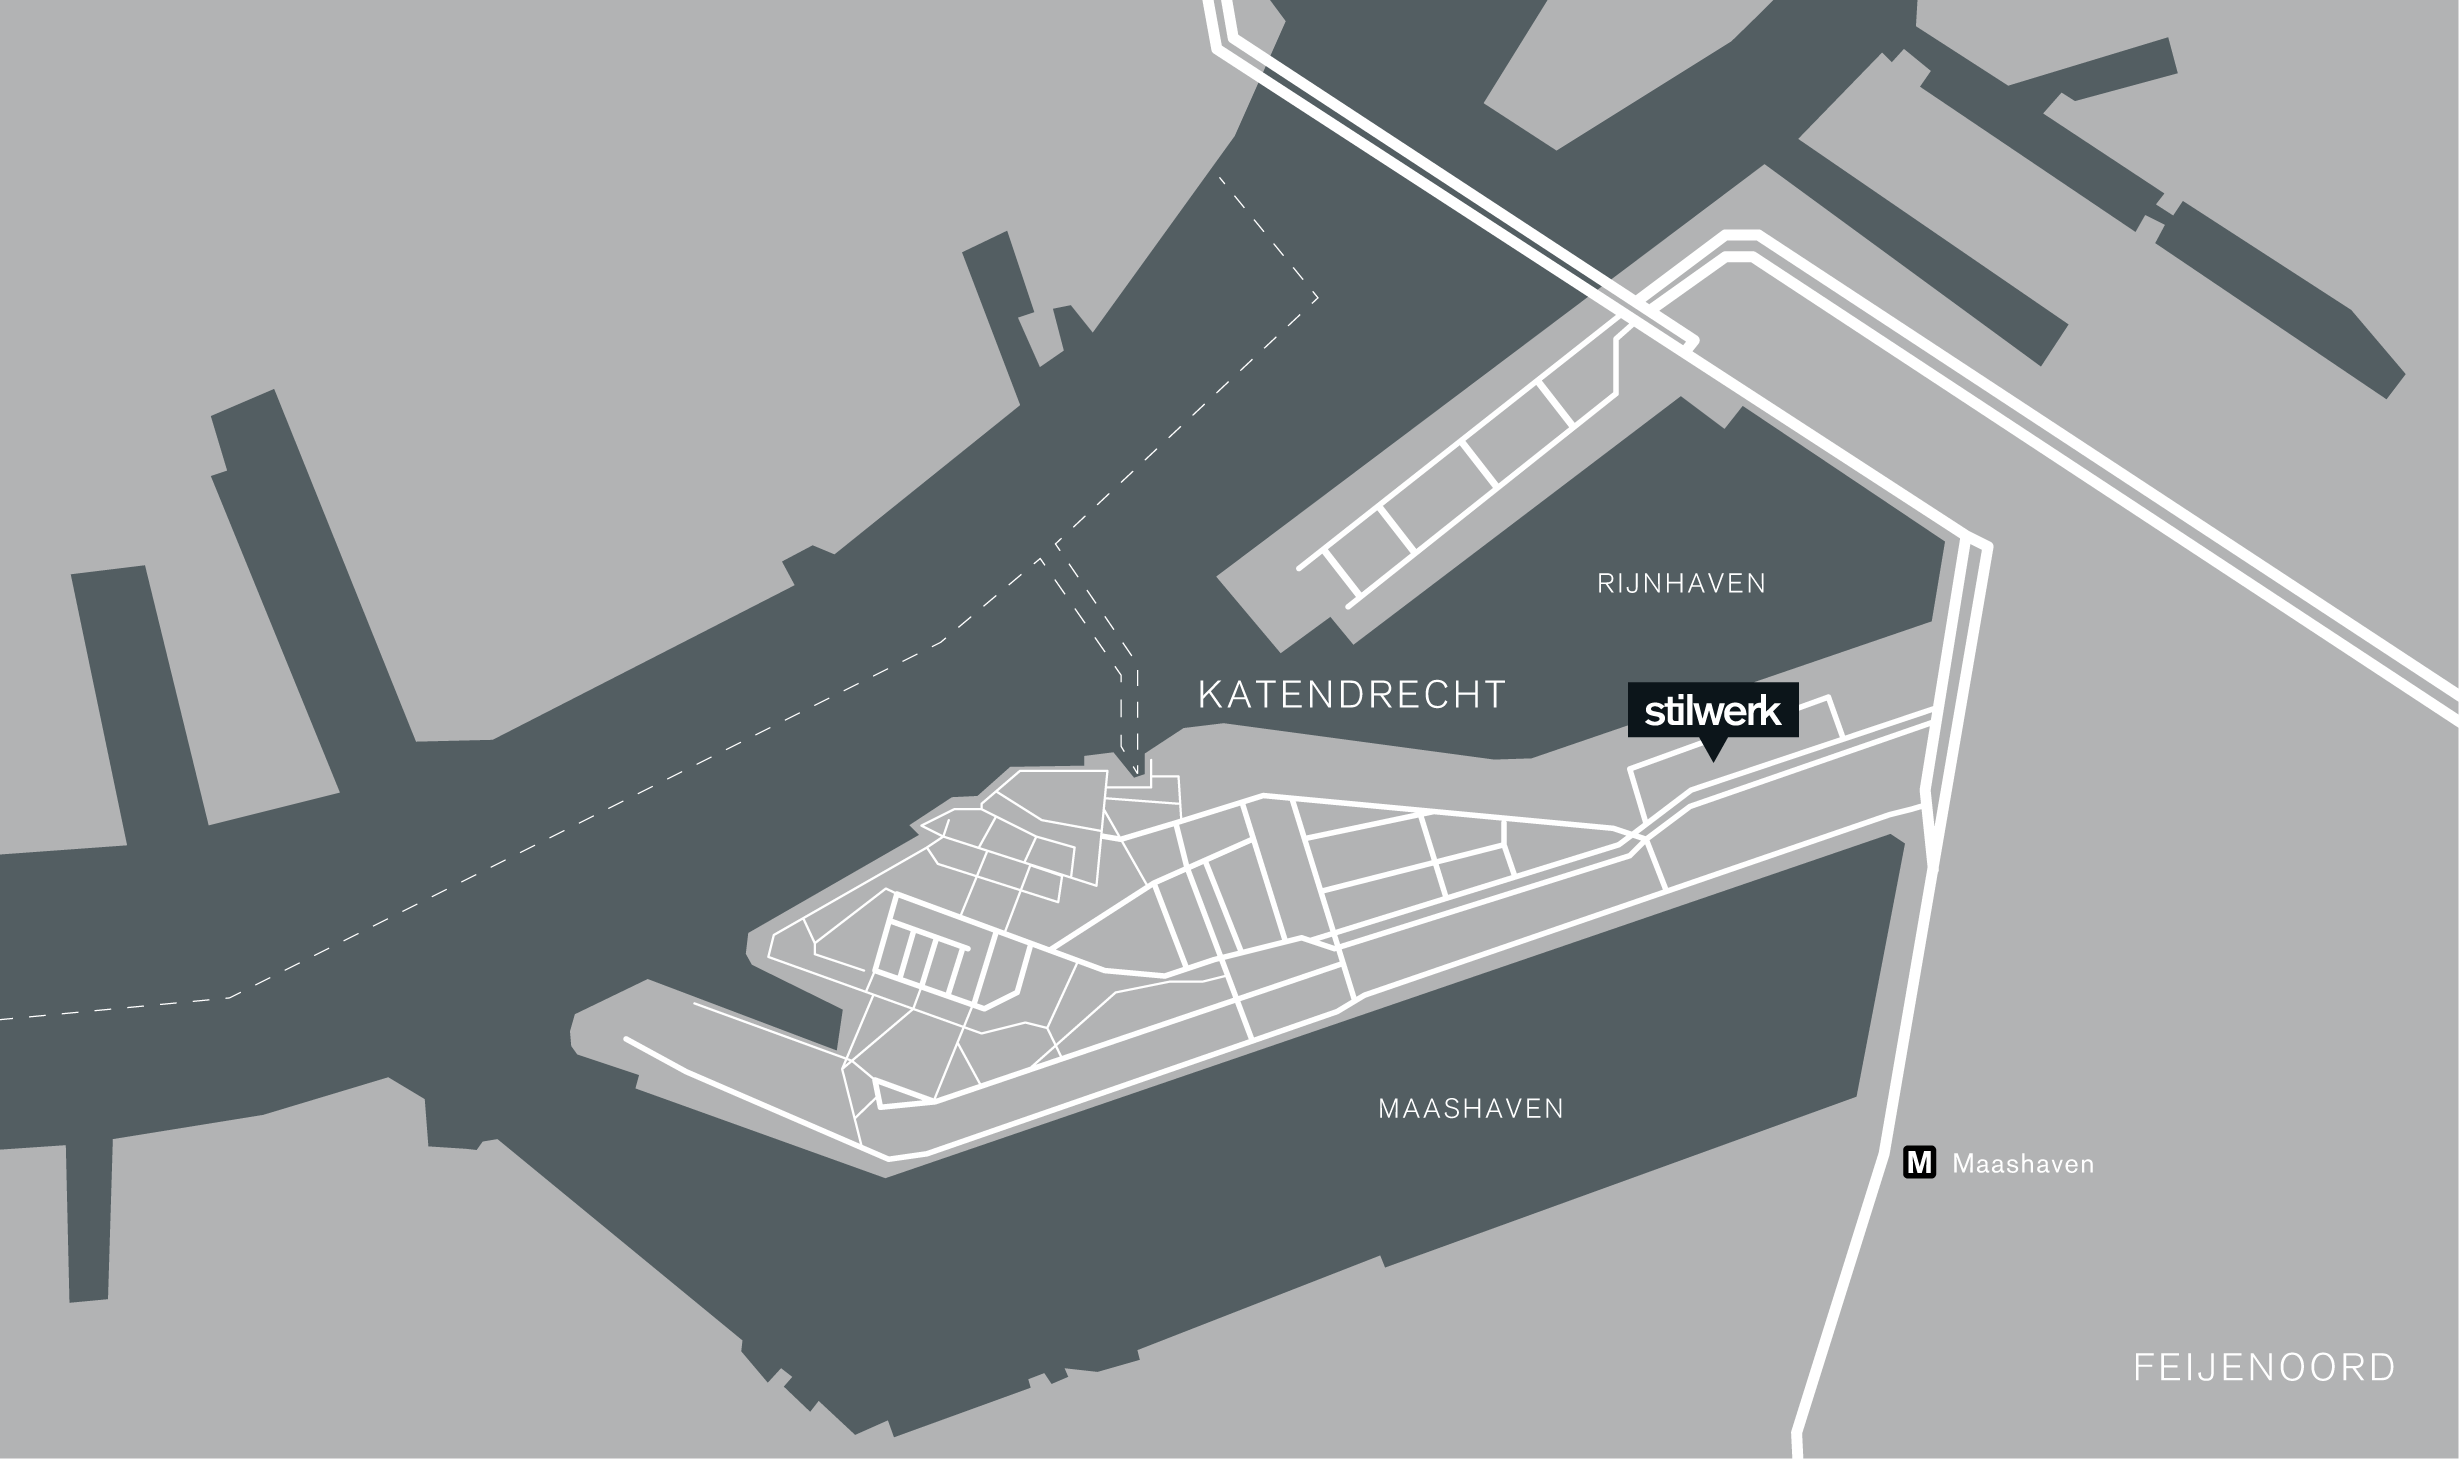 stilwerk_rotterdam_location_map_page_001